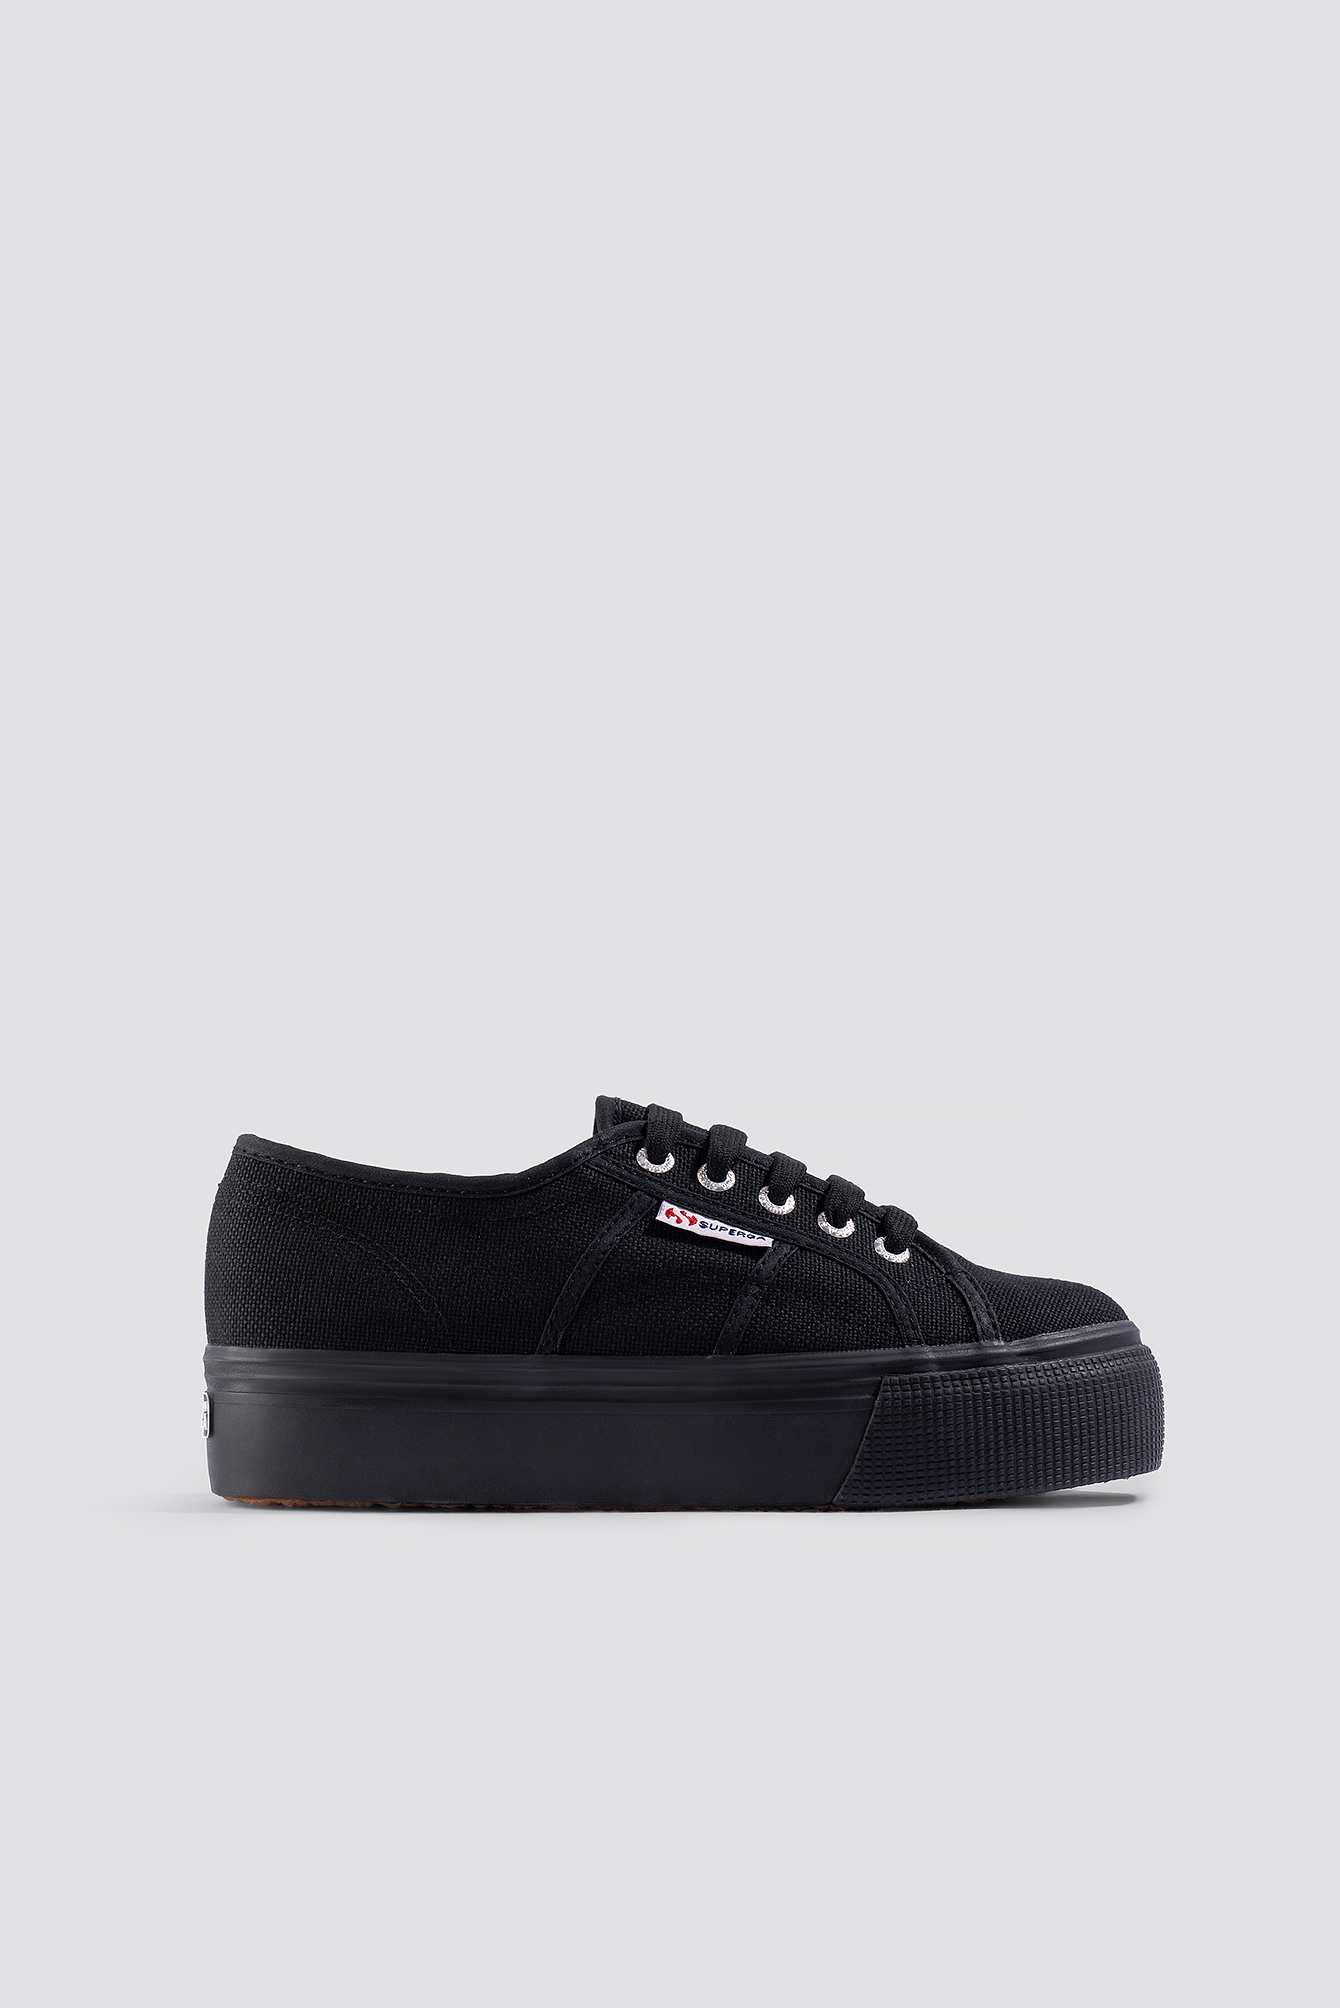 superga -  Acotw Linea 2790 - Black